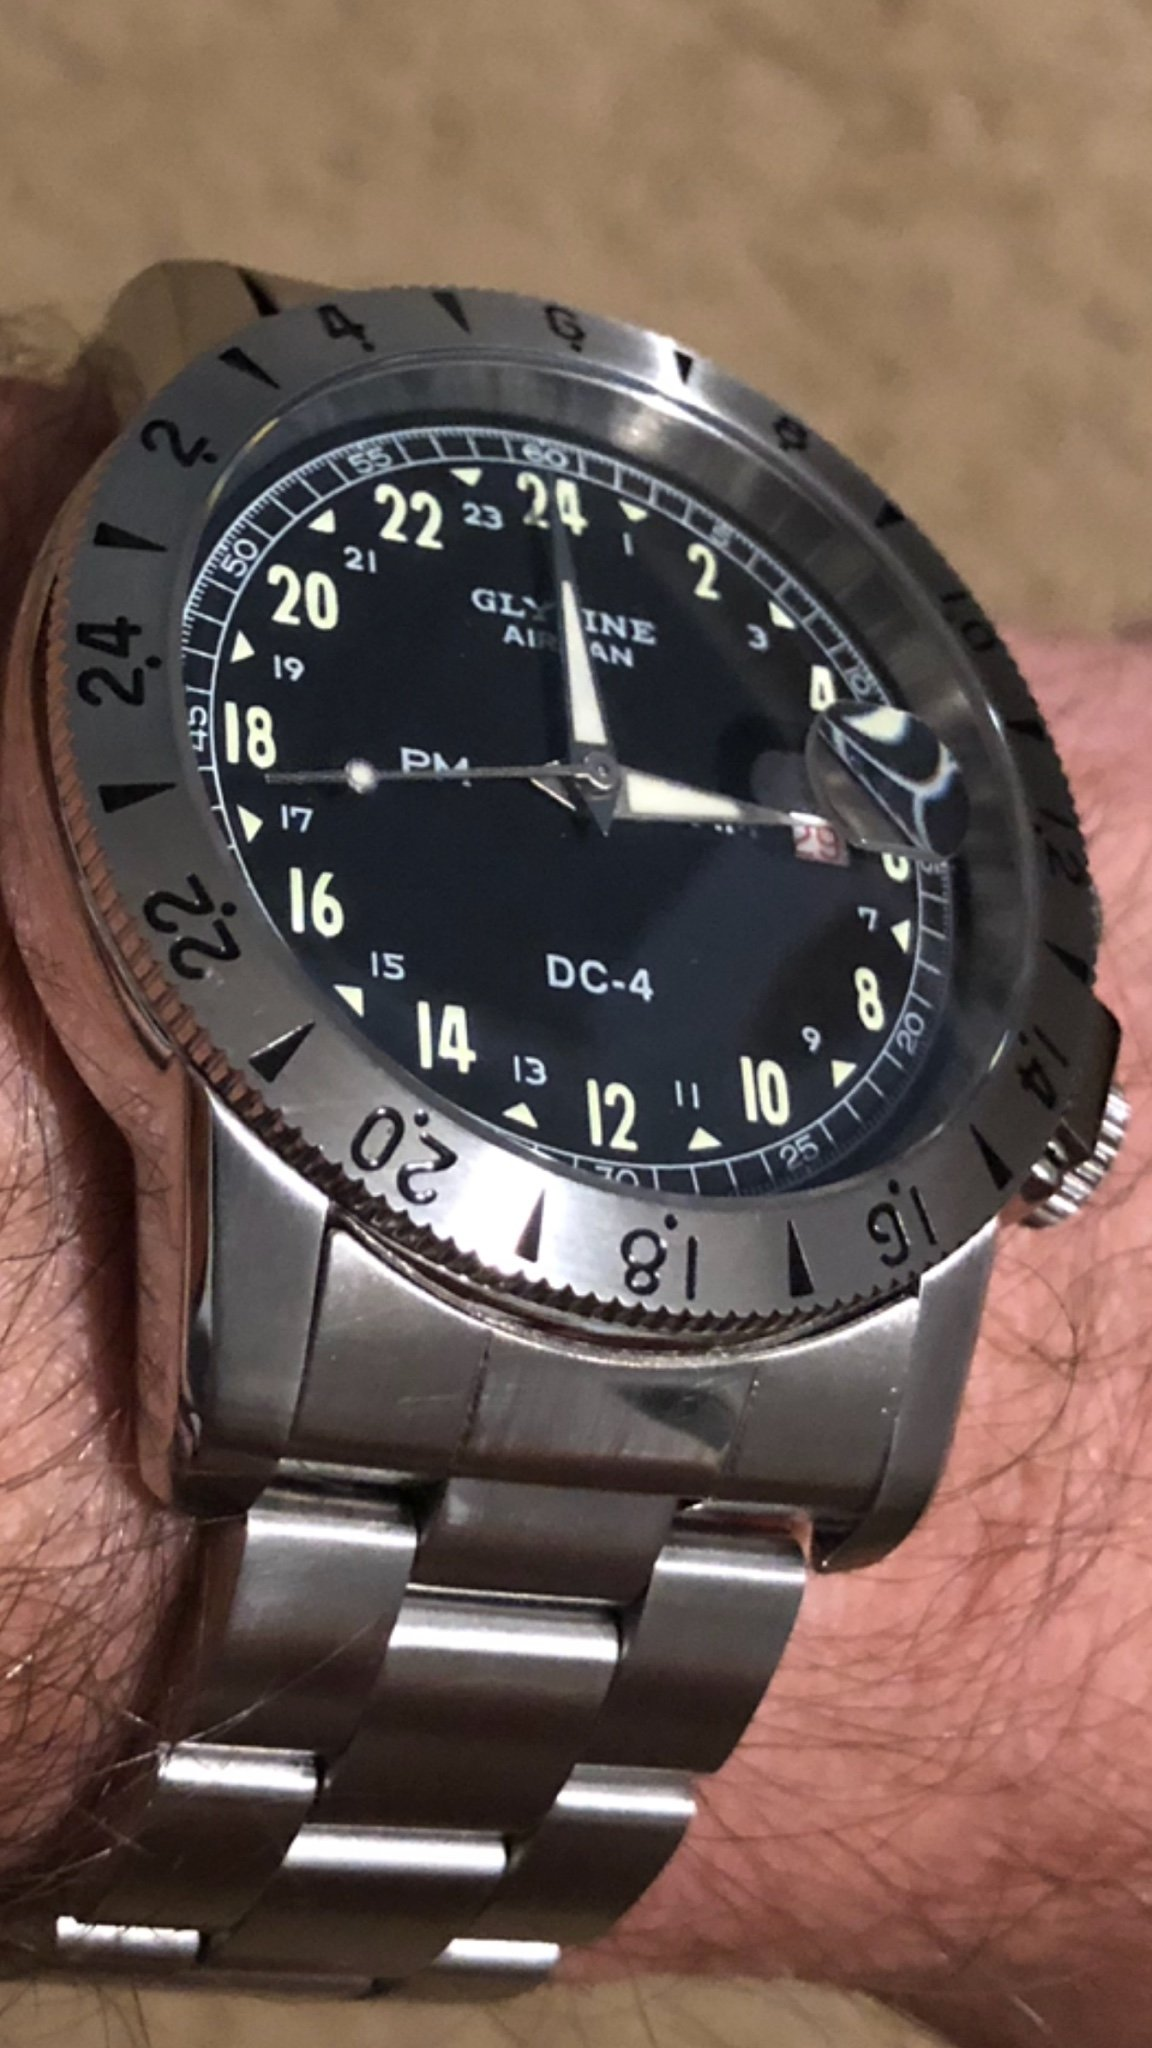 Stainless bracelet recommendation for Glycine 42mm DC-4 Airman